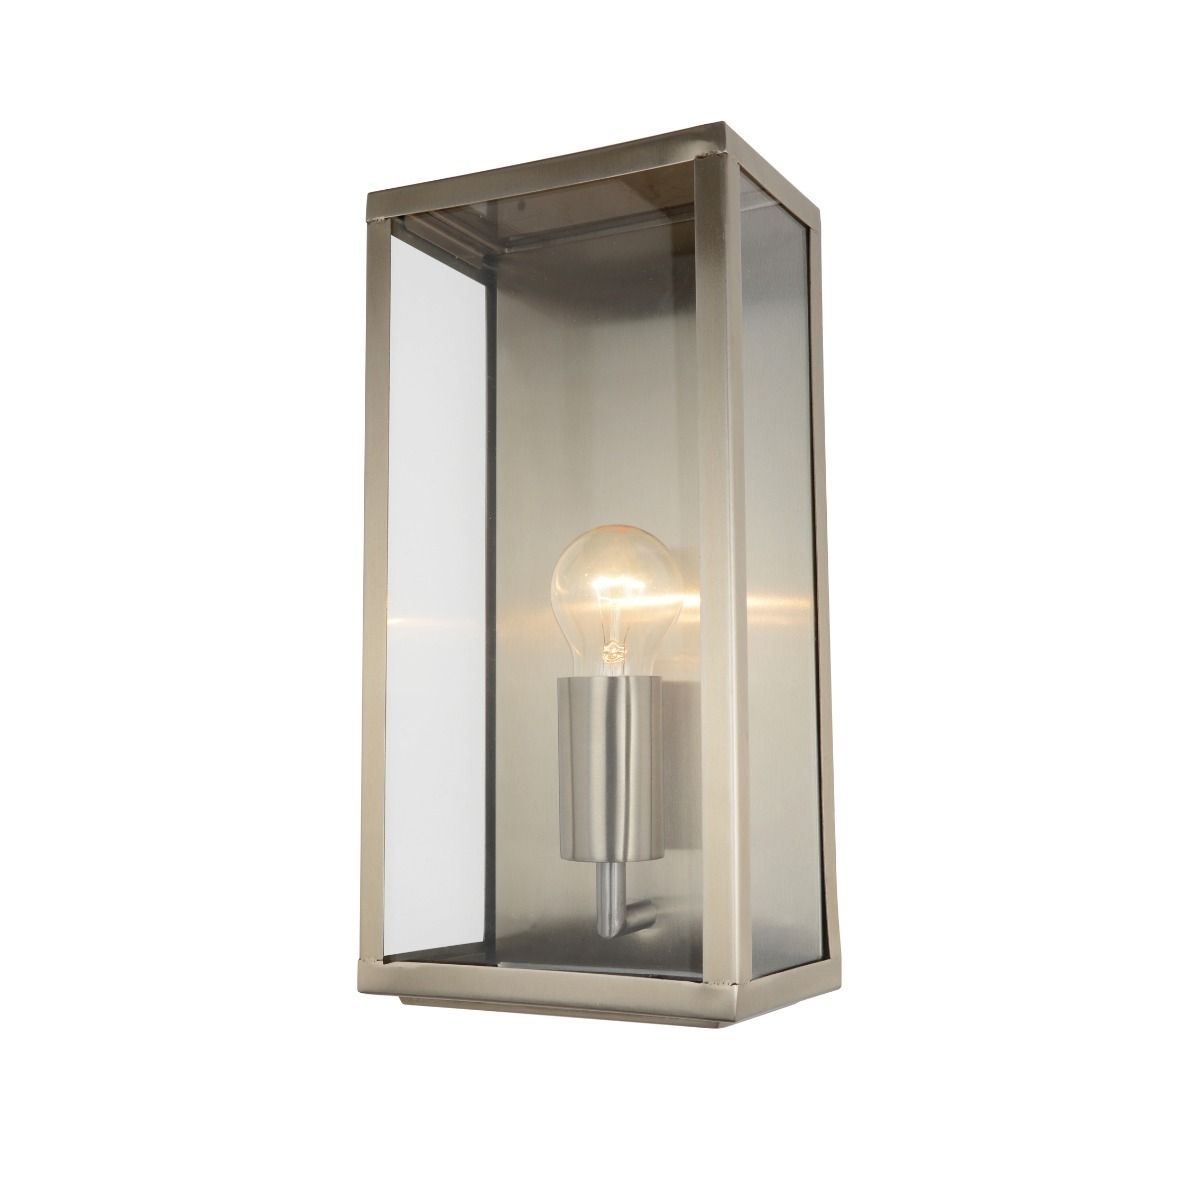 Stratus Outdoor Wall Lantern Light in Stainless Steel